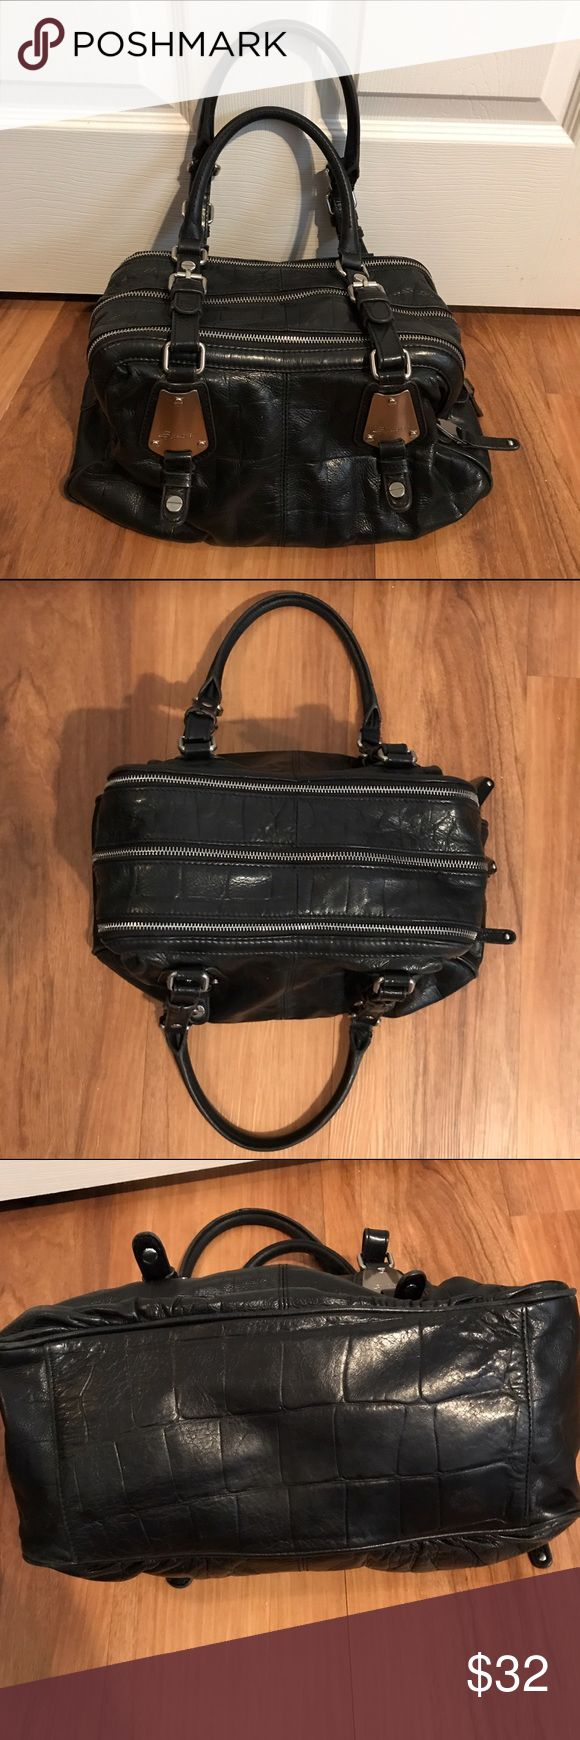 """B Makowsky Handbag- Black Nice preowned condition. Leather and inside are clean with no issues. Handles have some cracking on inner edge. See last pic. 14""""x9""""x6"""" with 11"""" drop b. makowsky Bags"""